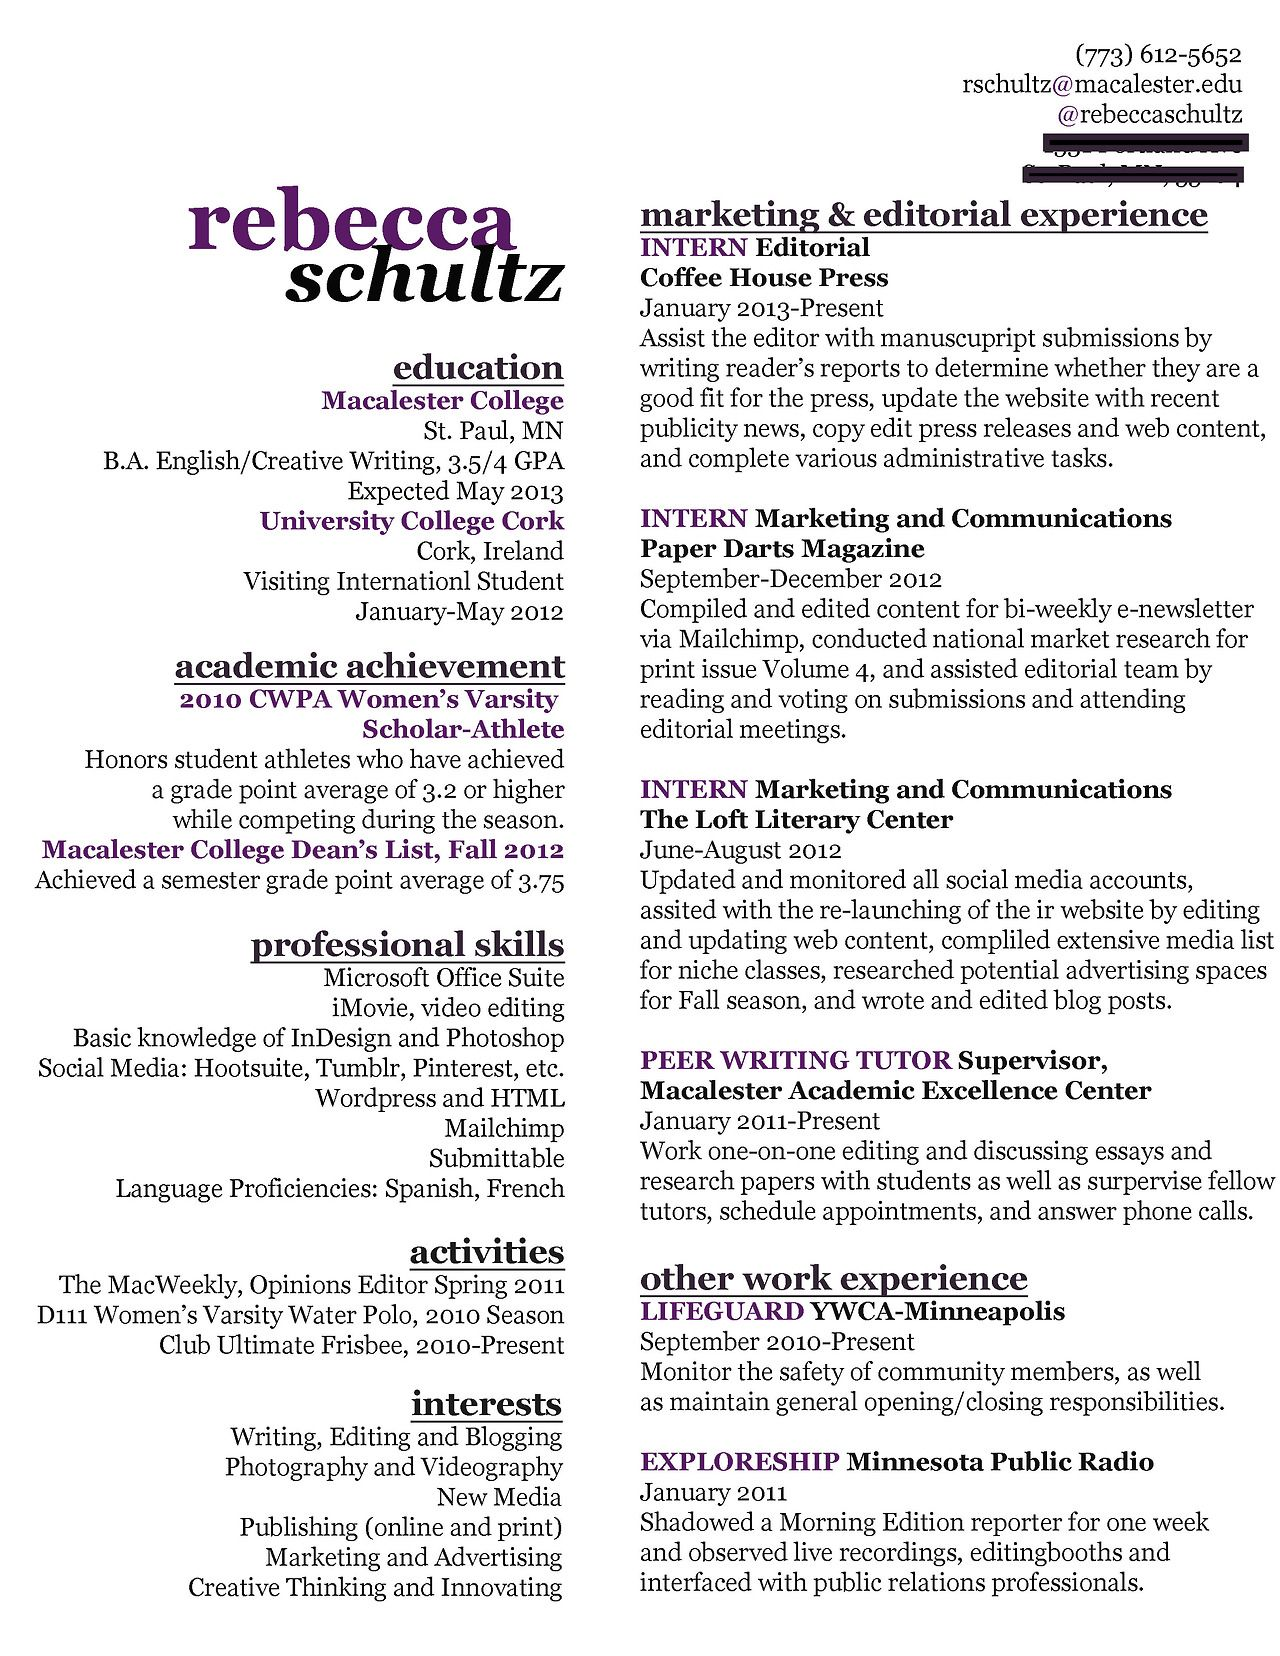 My Resume Creative Resume Writing Resume Marketing Resume